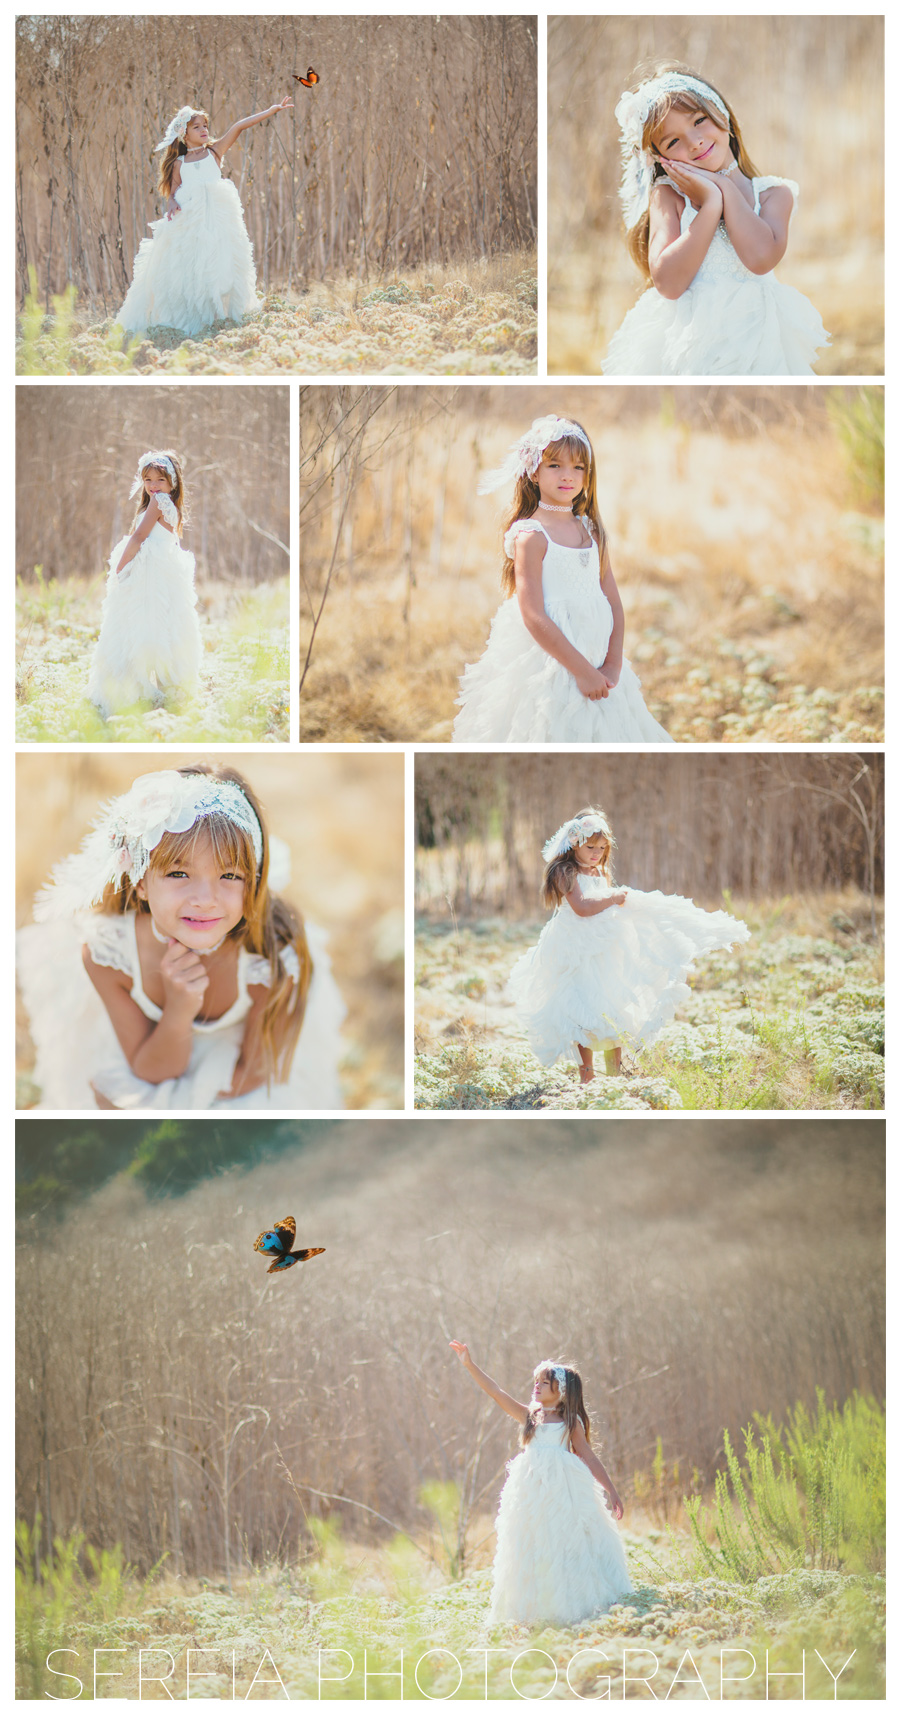 Booking Fall Photo Sessions in San Diego